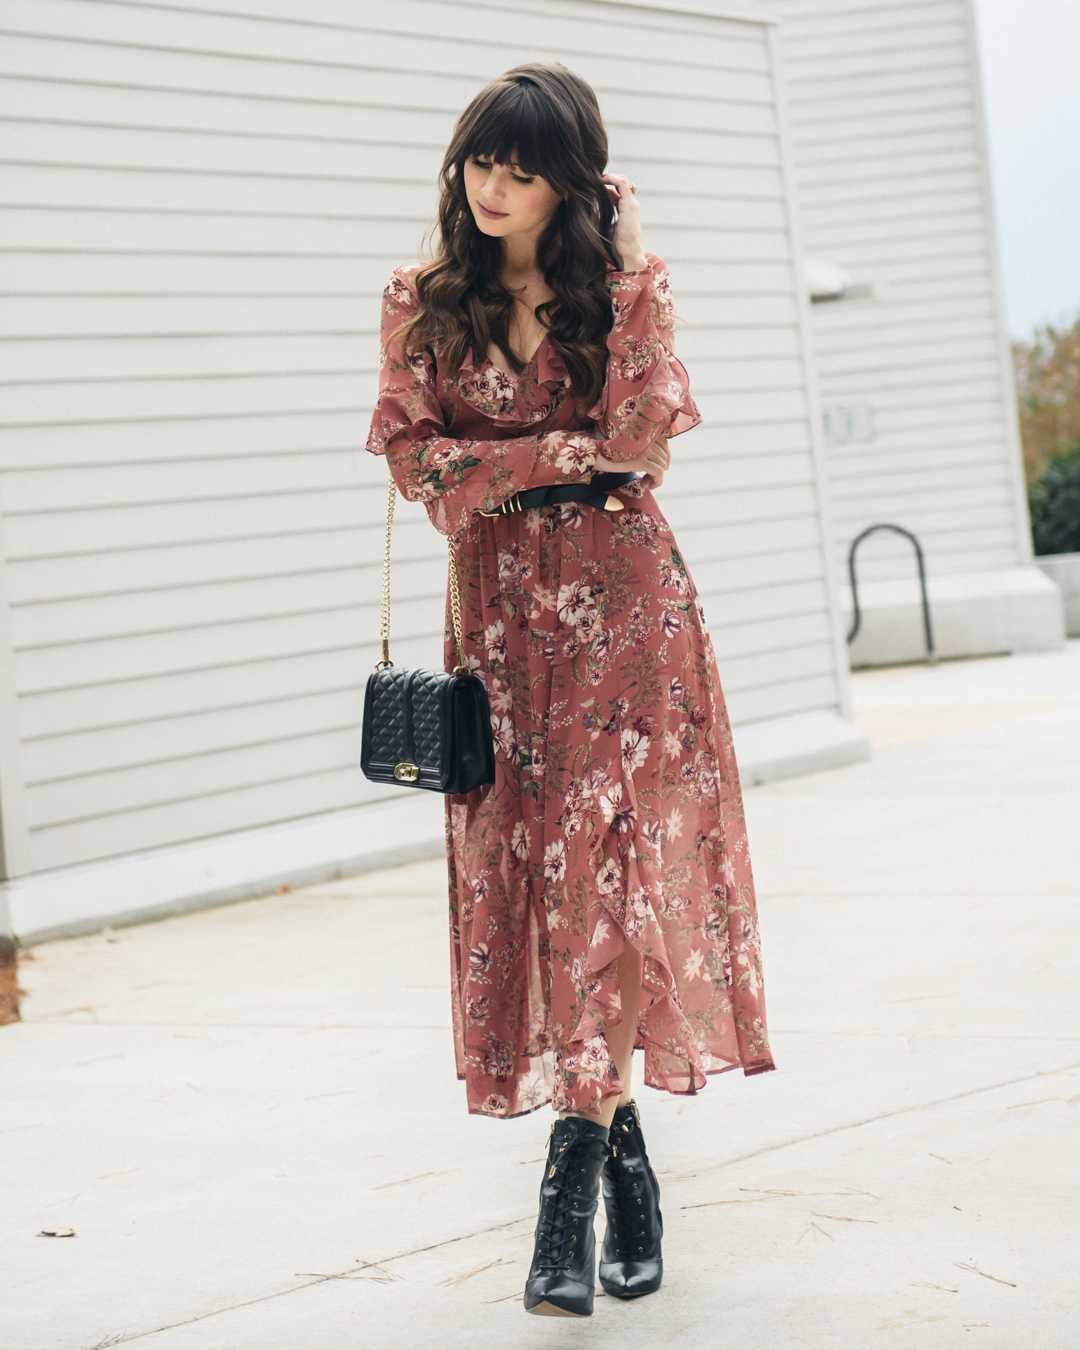 How to Wear Floral Dresses Year Round – THE M.A. TIMES